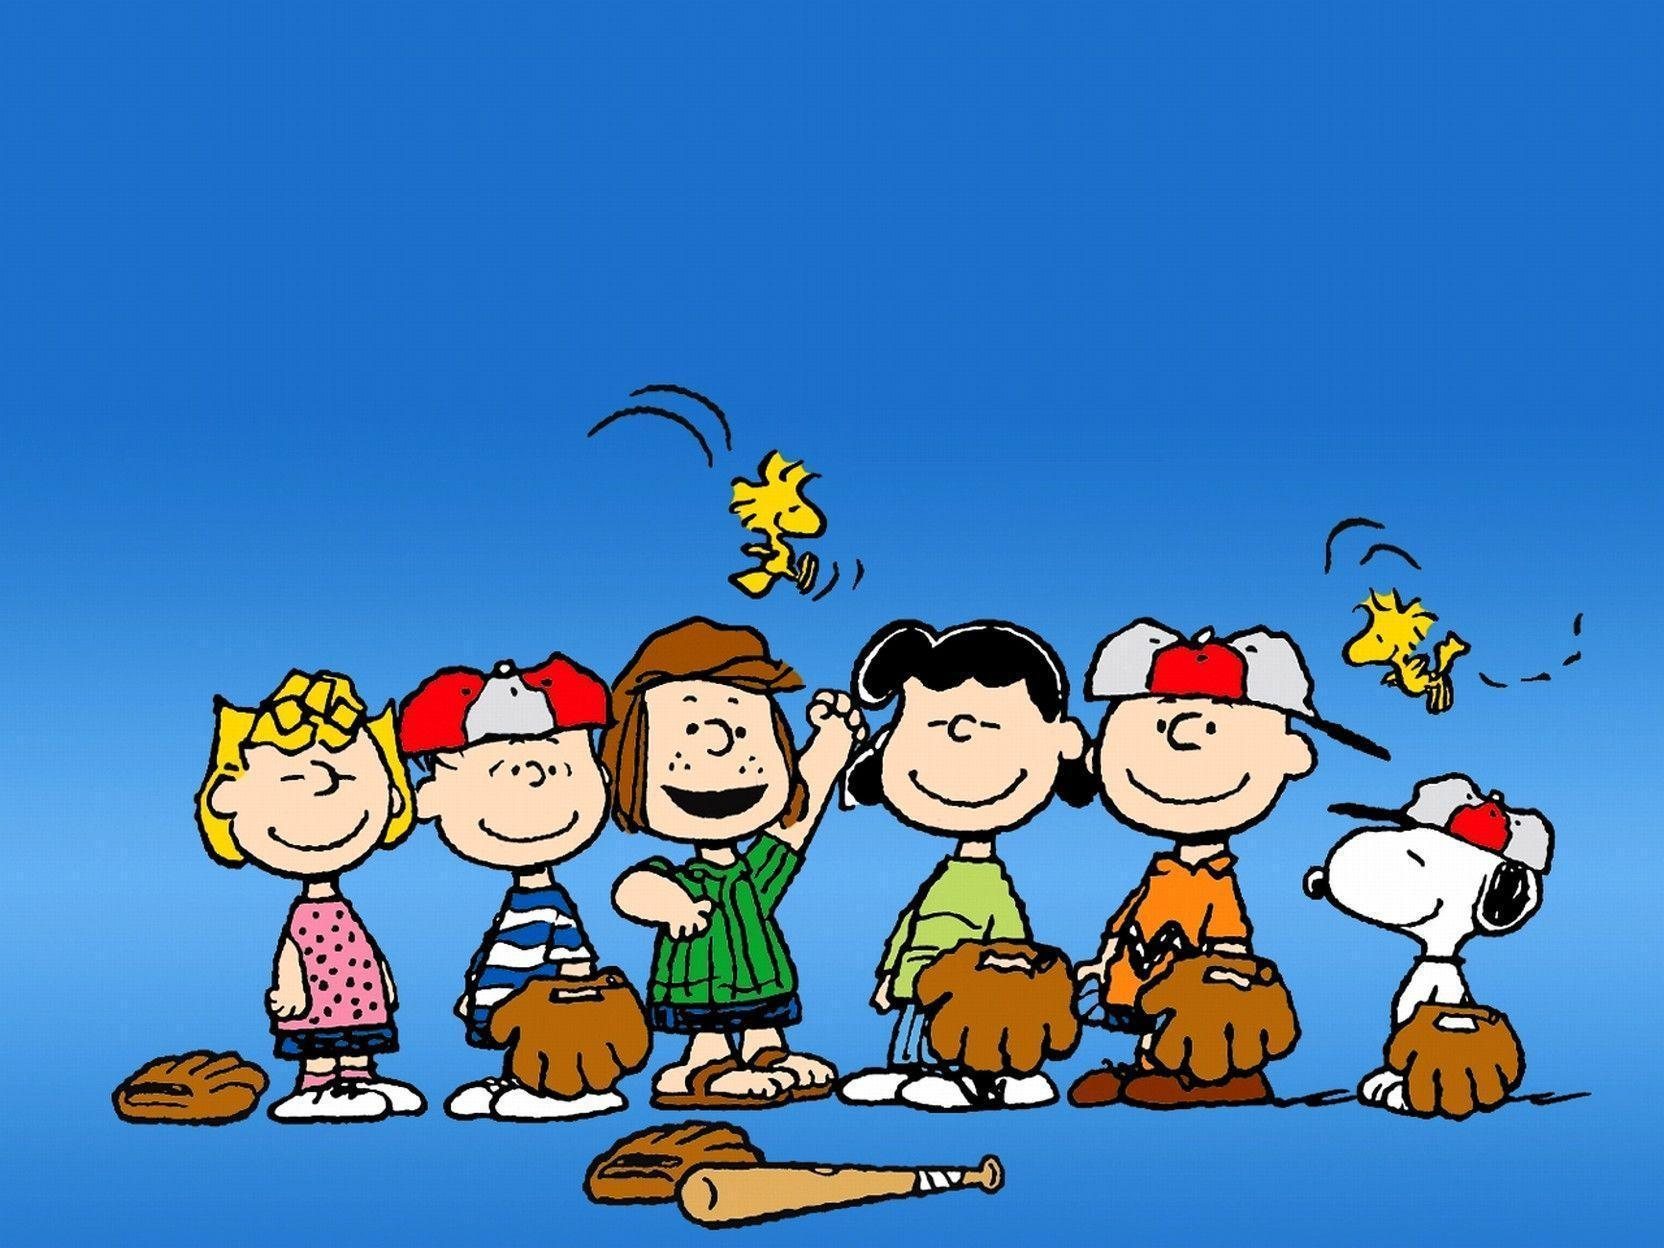 Peanuts Wallpapers - Top Free Peanuts